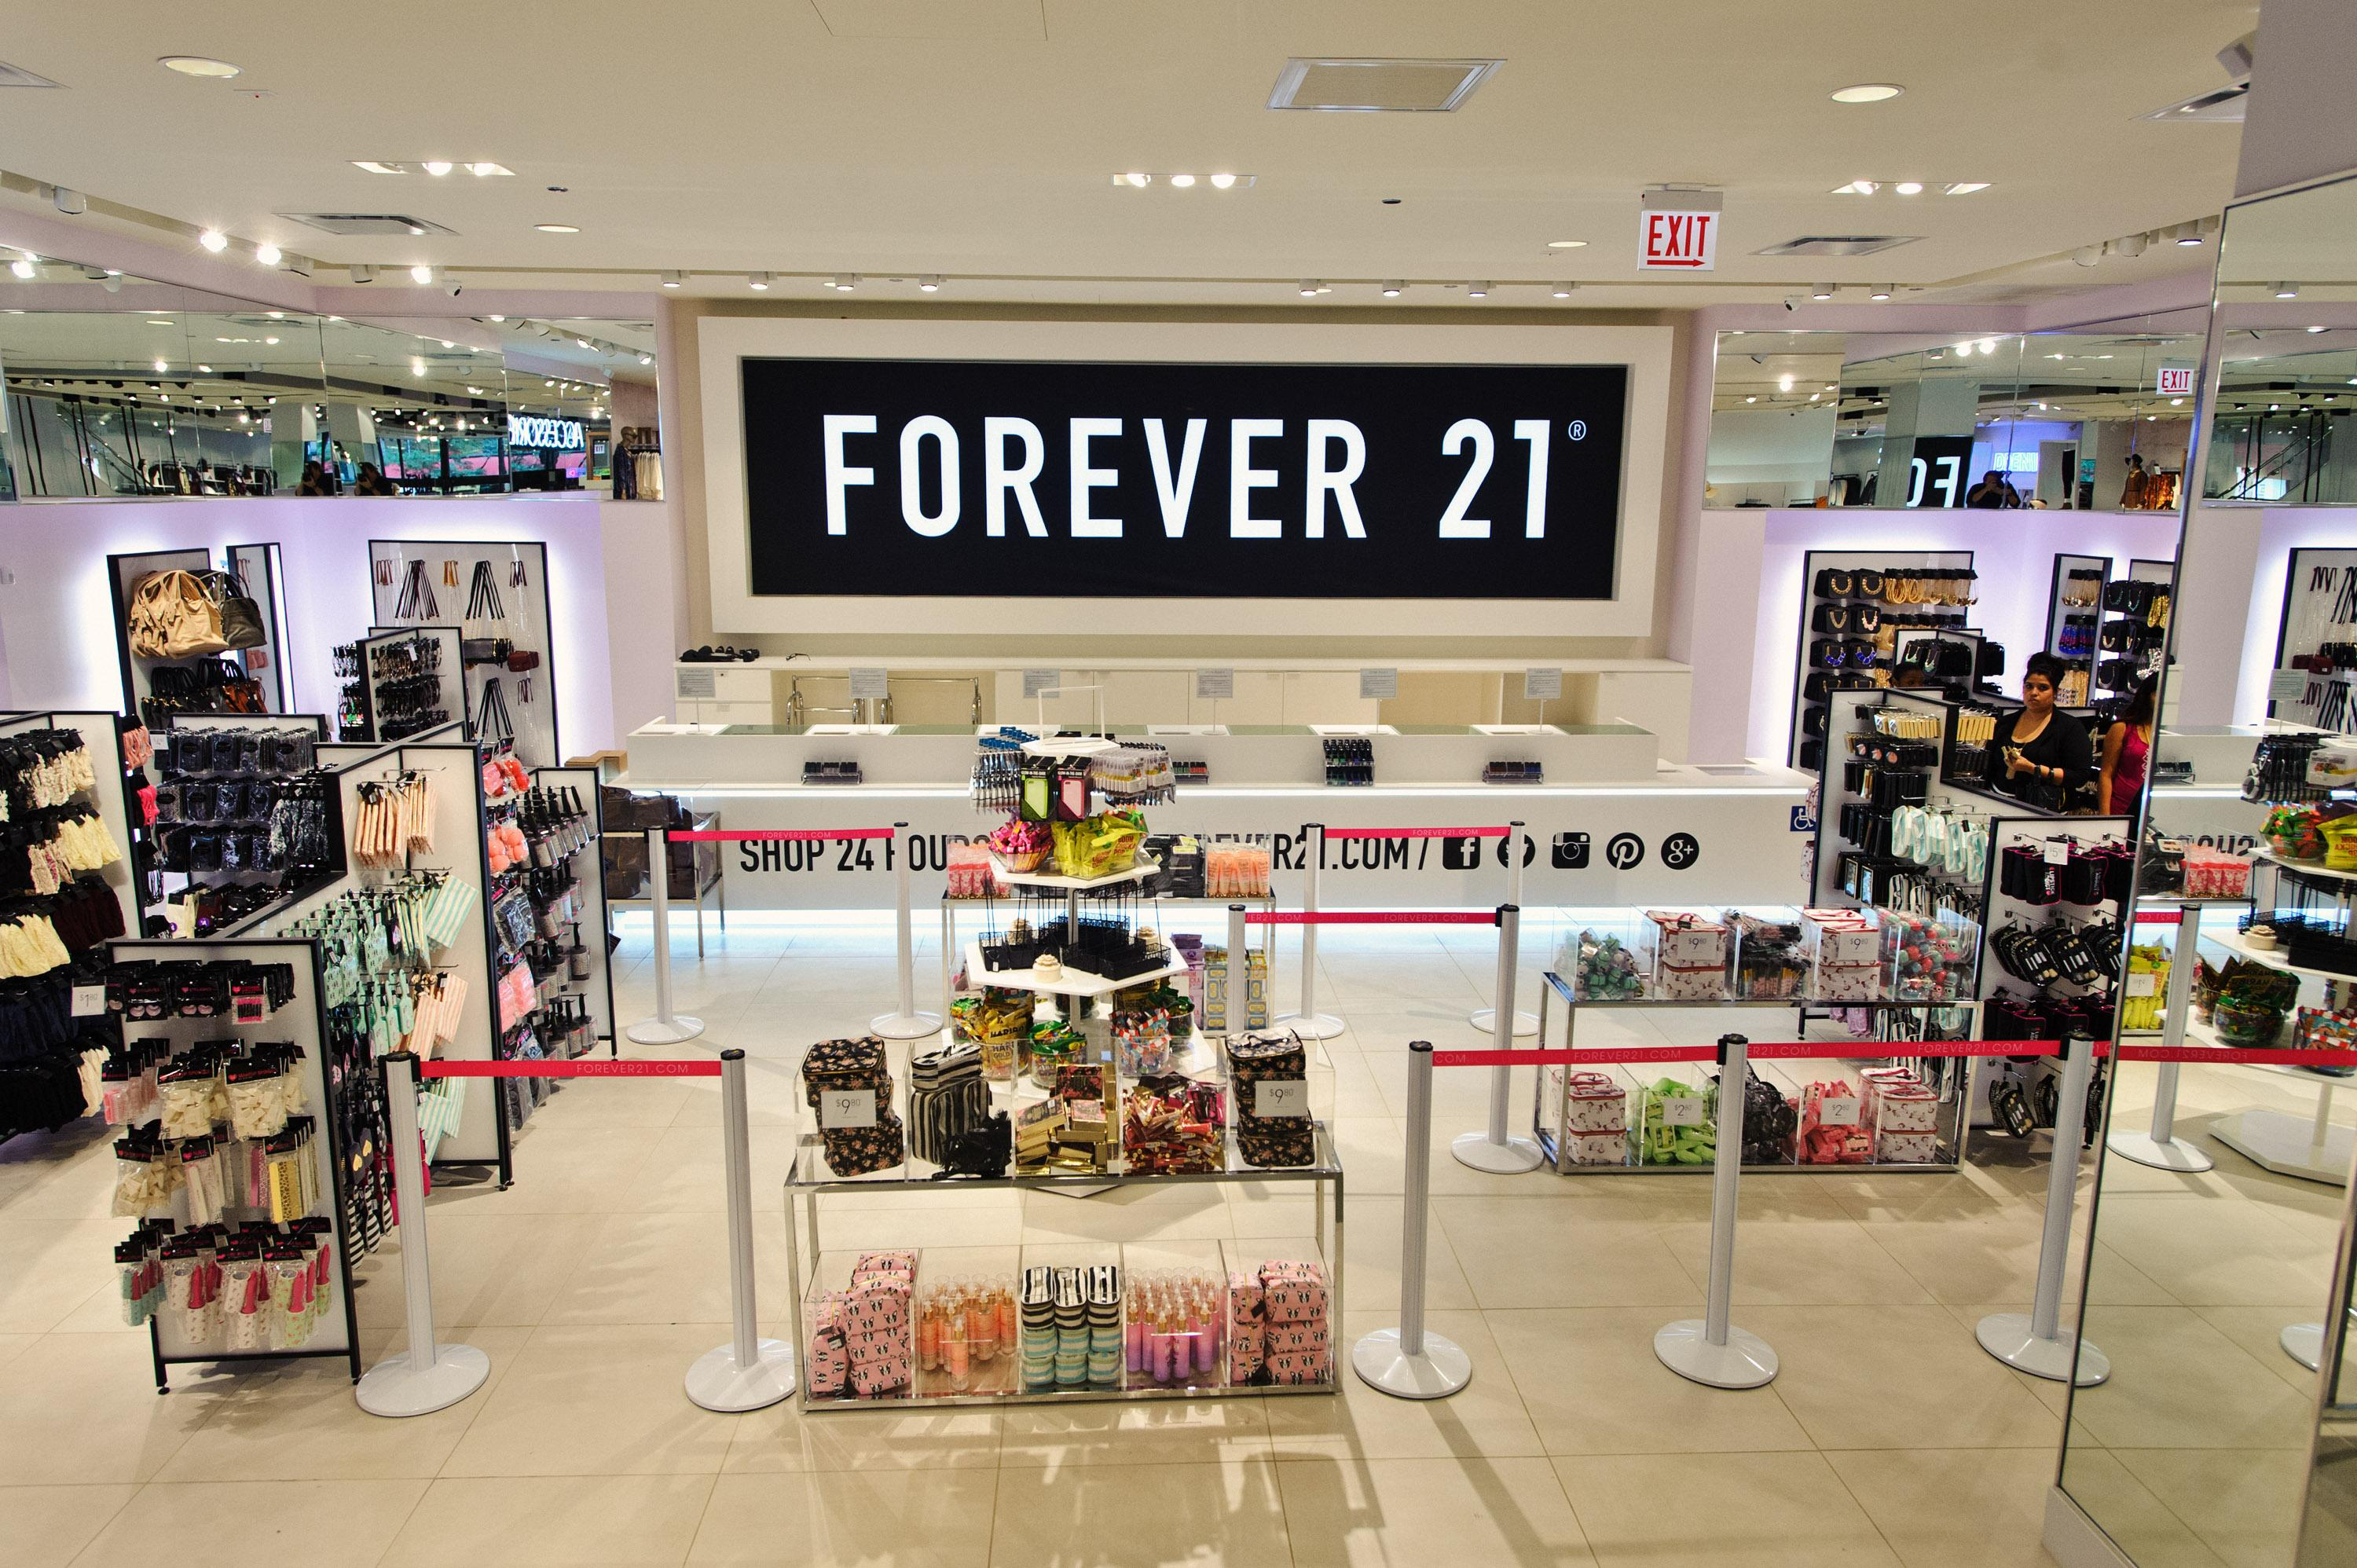 Forever 21 Latest Retailer to File for Bankruptcy